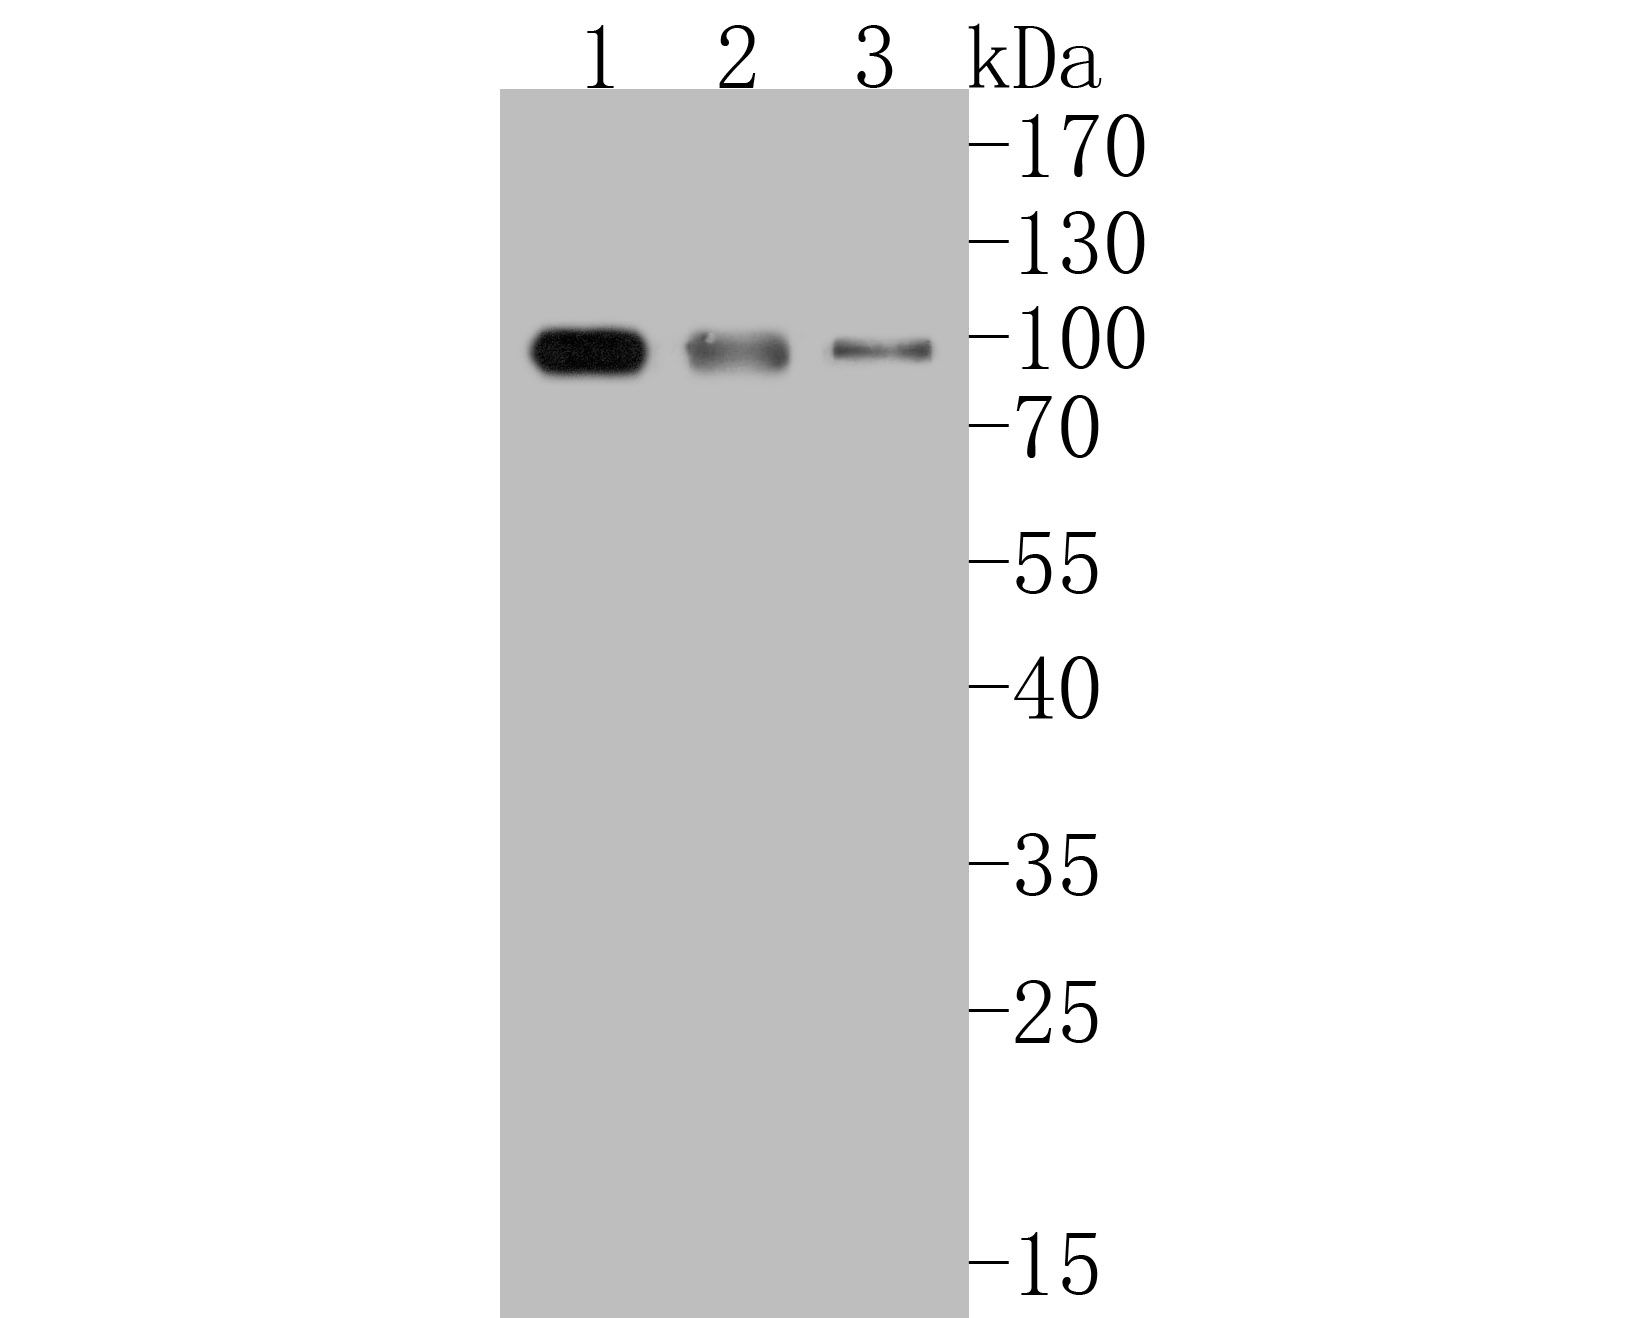 Western blot analysis of IKK alpha + IKK beta on different lysates. Proteins were transferred to a PVDF membrane and blocked with 5% BSA in PBS for 1 hour at room temperature. The primary antibody (ET1611-23, 1/500) was used in 5% BSA at room temperature for 2 hours. Goat Anti-Rabbit IgG - HRP Secondary Antibody (HA1001) at 1:5,000 dilution was used for 1 hour at room temperature.<br />  Positive control: <br />  Lane 1: Hela cell lysate<br />  Lane 2: A431 cell lysate<br />  Lane 3: Daudi cell lysate